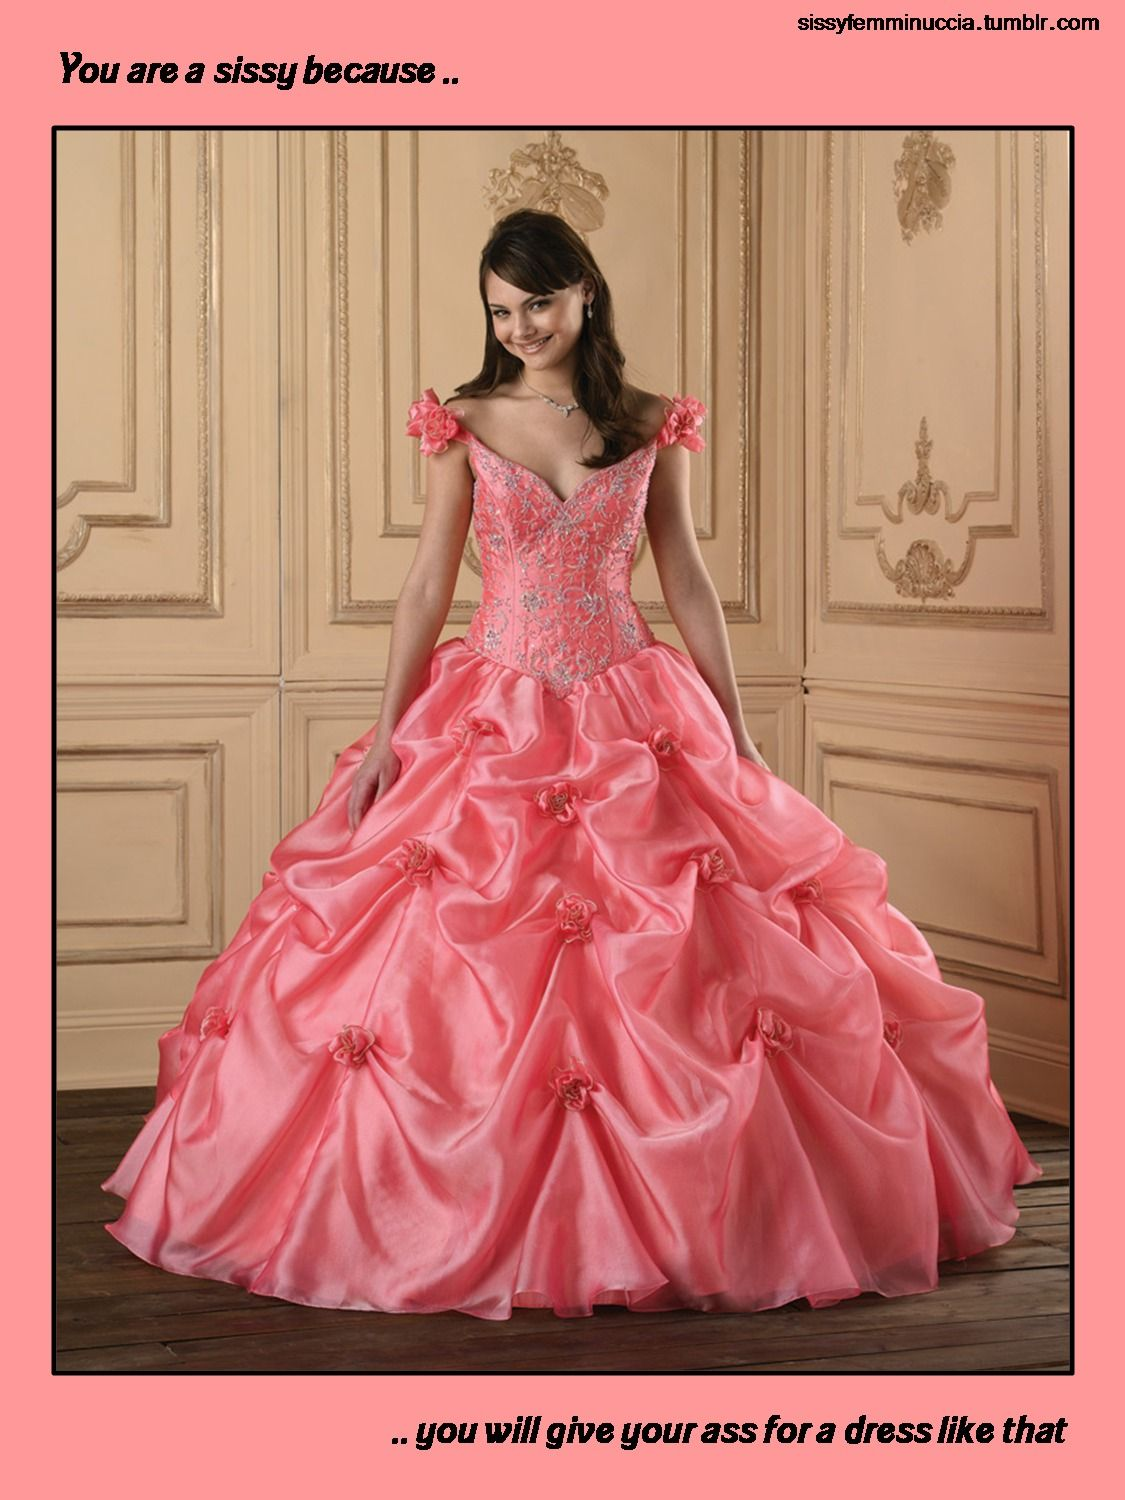 Frilly Sissy Tumblr pertaining to you are a sissy because you will give your ass for a dress like